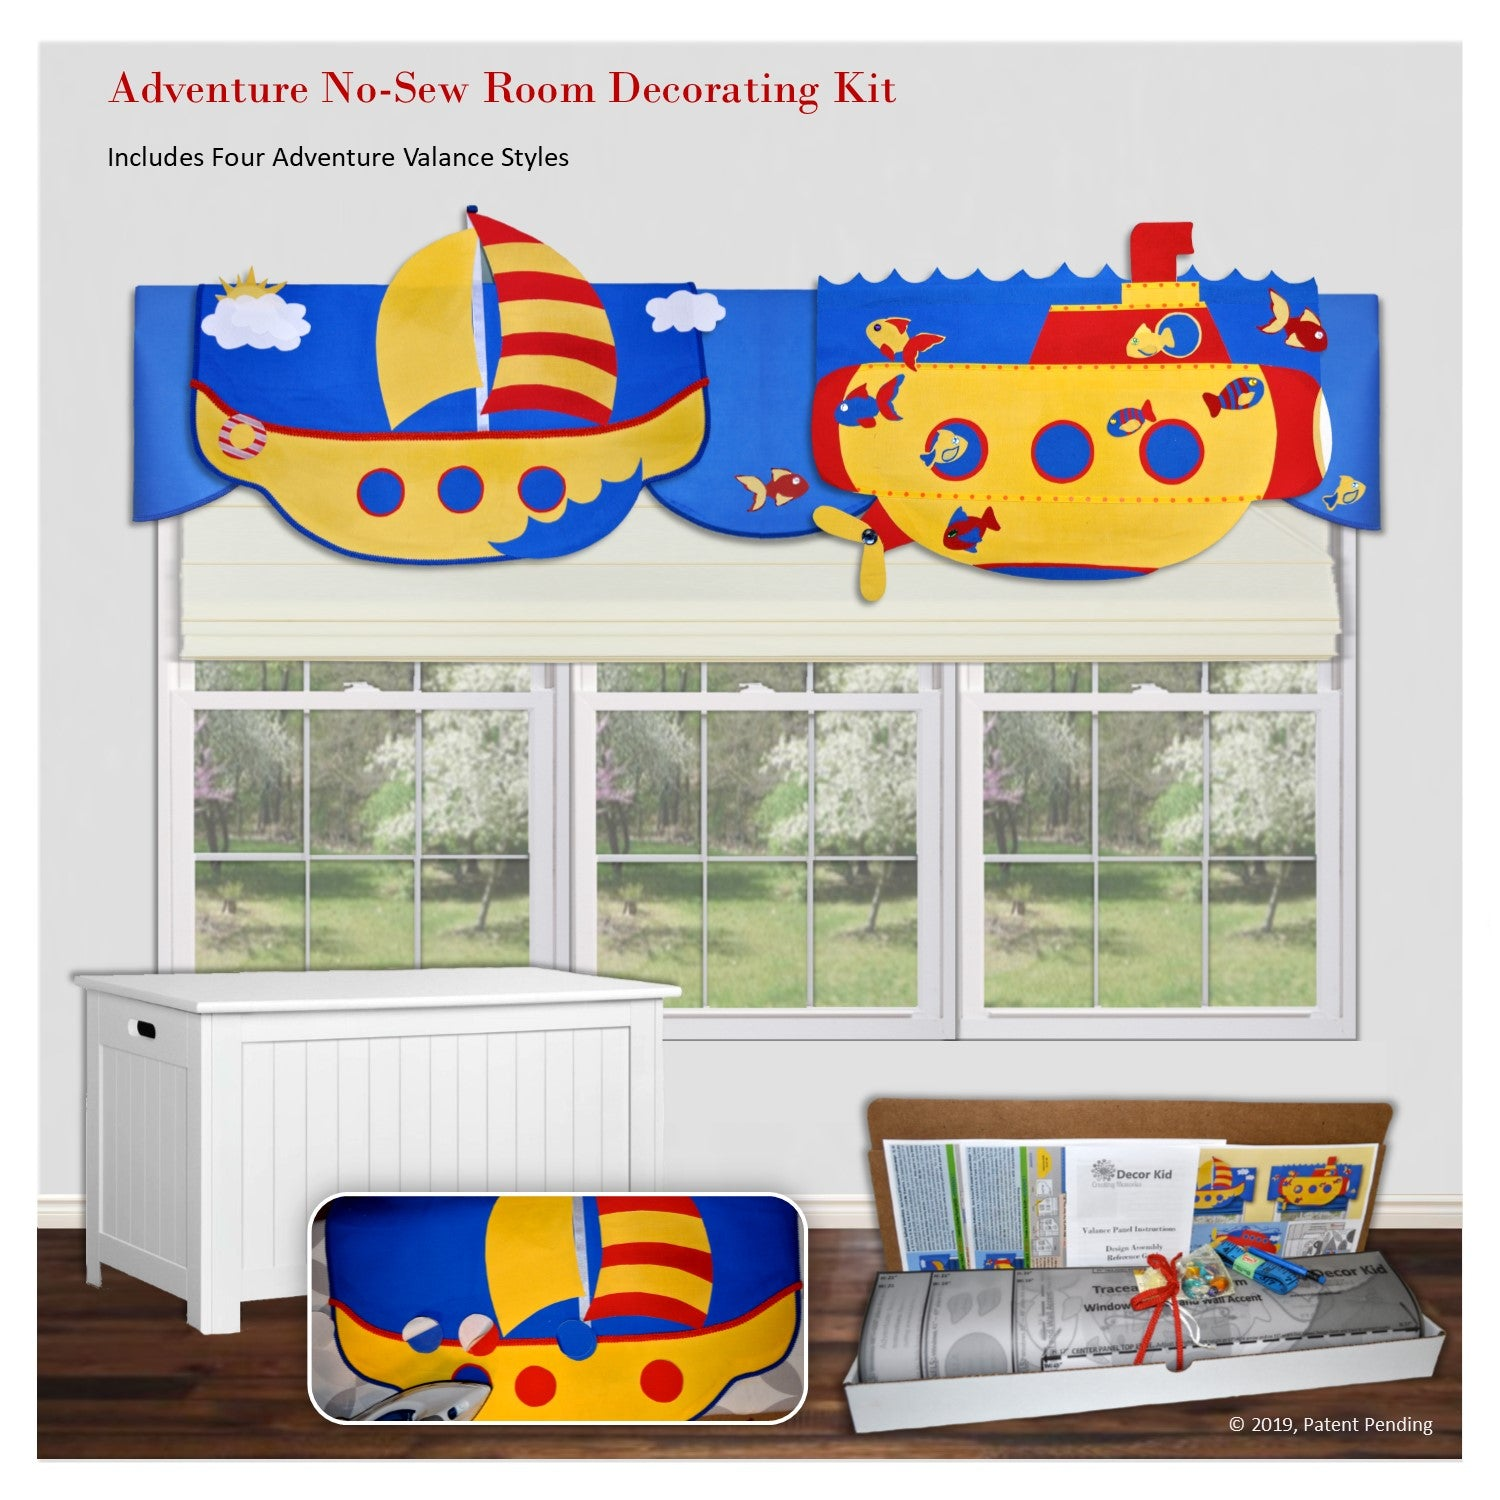 Children's 3D window decorations, unique adventure valances, airplane, rocket, sailboat and submarine, DIY no sewing